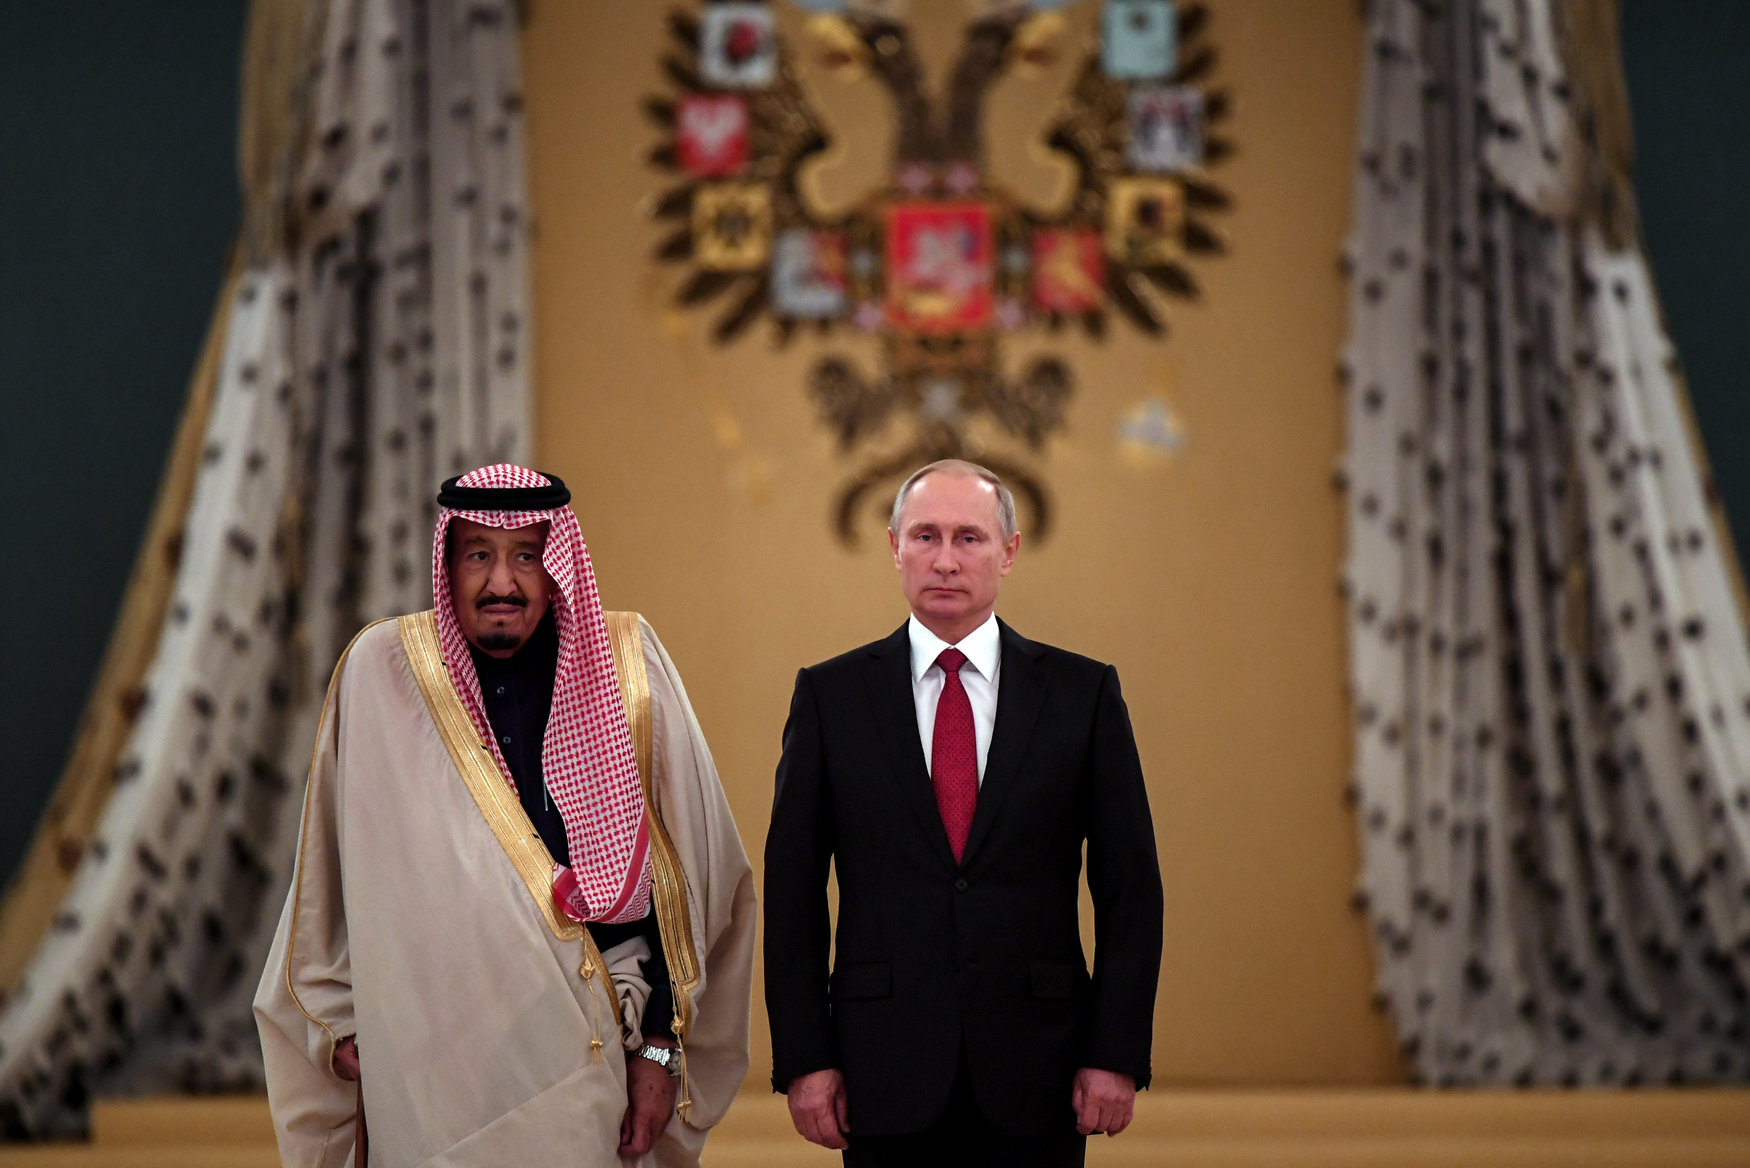 Is Russia Trying to Take America's Role in the Middle East?